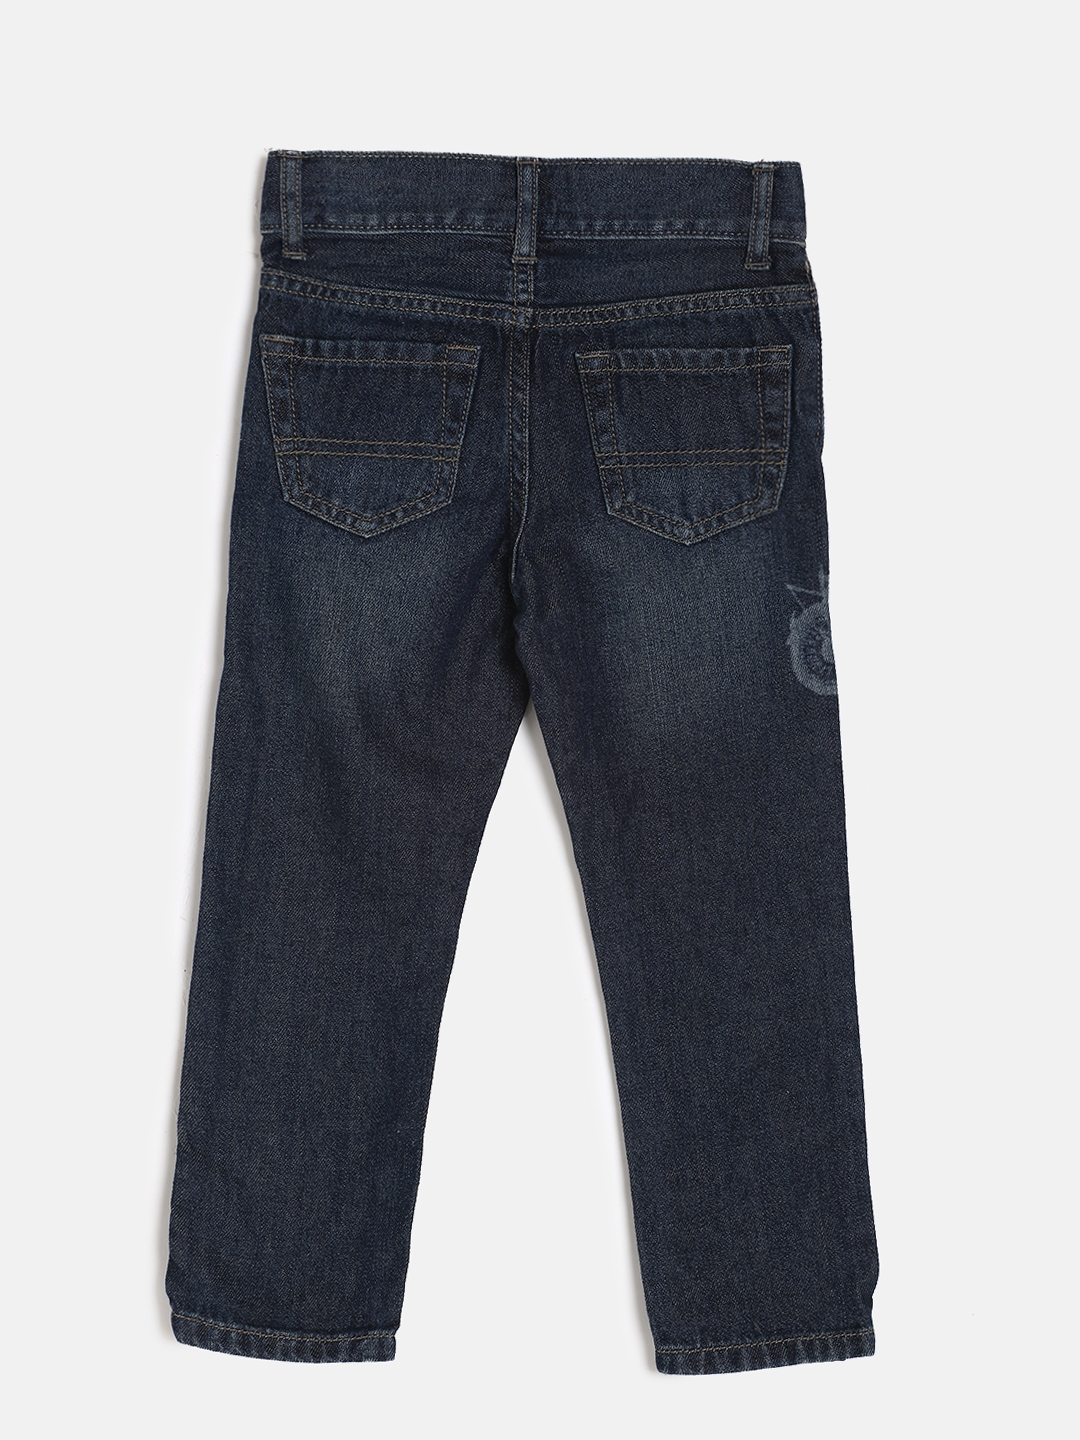 6f666e5fdc137 The Childrens Place Boys Blue MOTORCYCLE Skinny Fit Mid-Rise Clean Look  Jeans